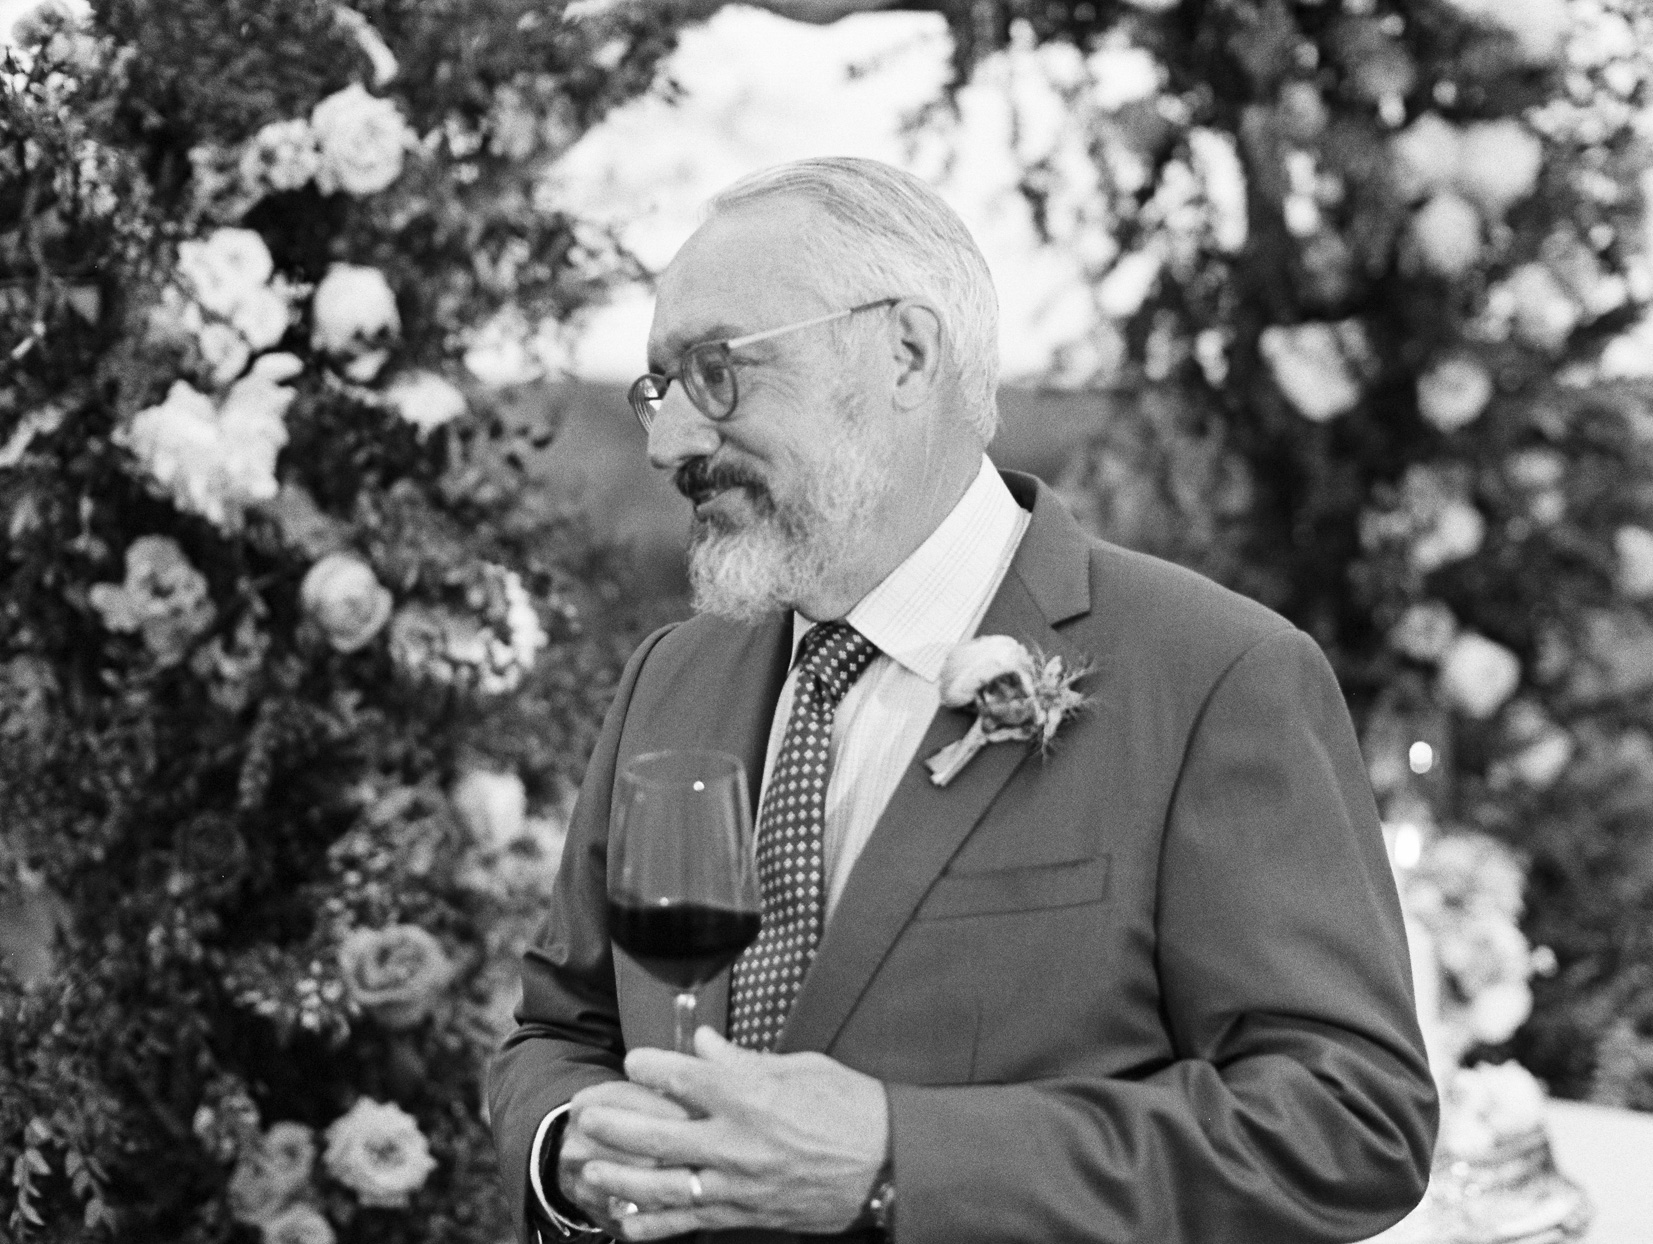 wedding guest holding wine glass during toast